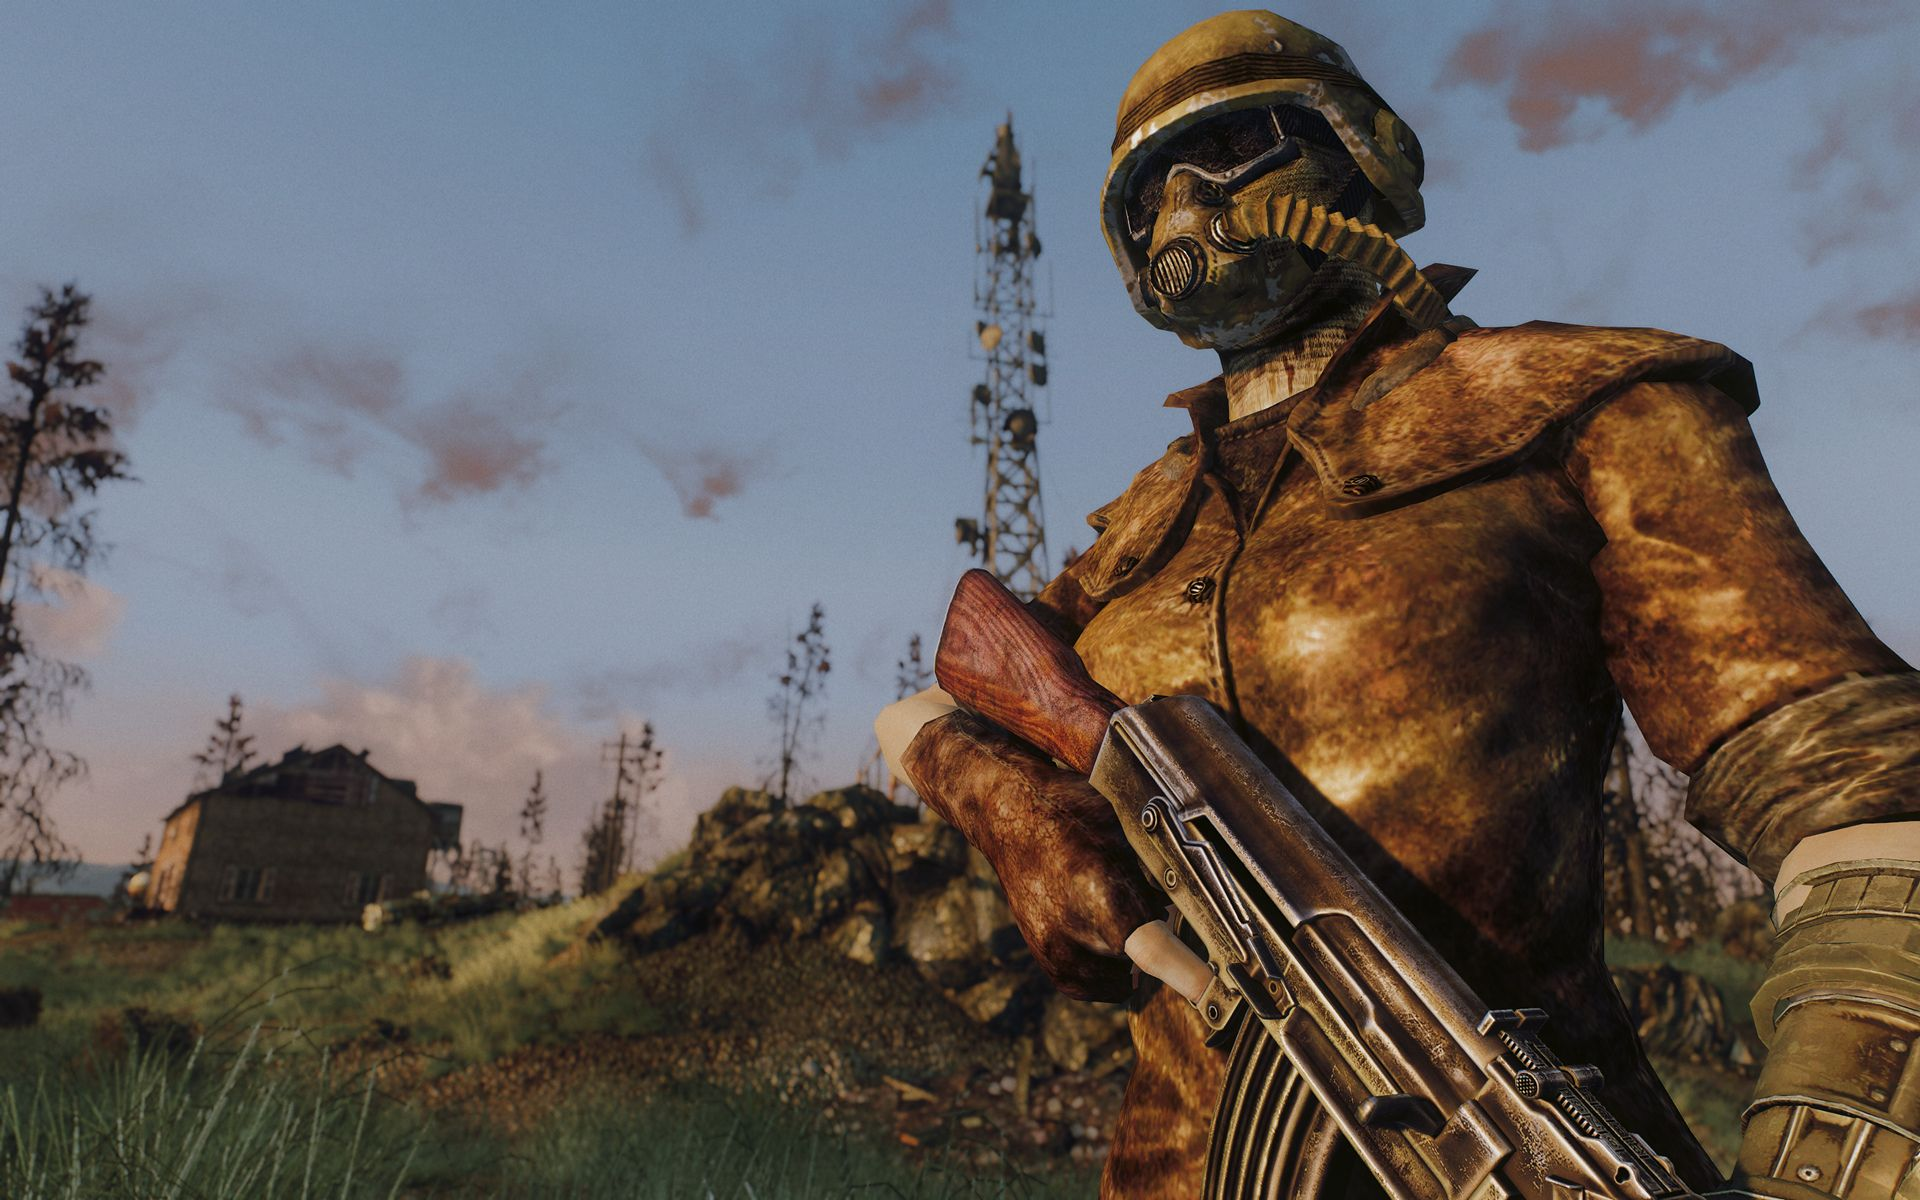 Realism Enb 0 237 At Fallout3 Nexus Mods And Community Fallout 3 Mod Realism